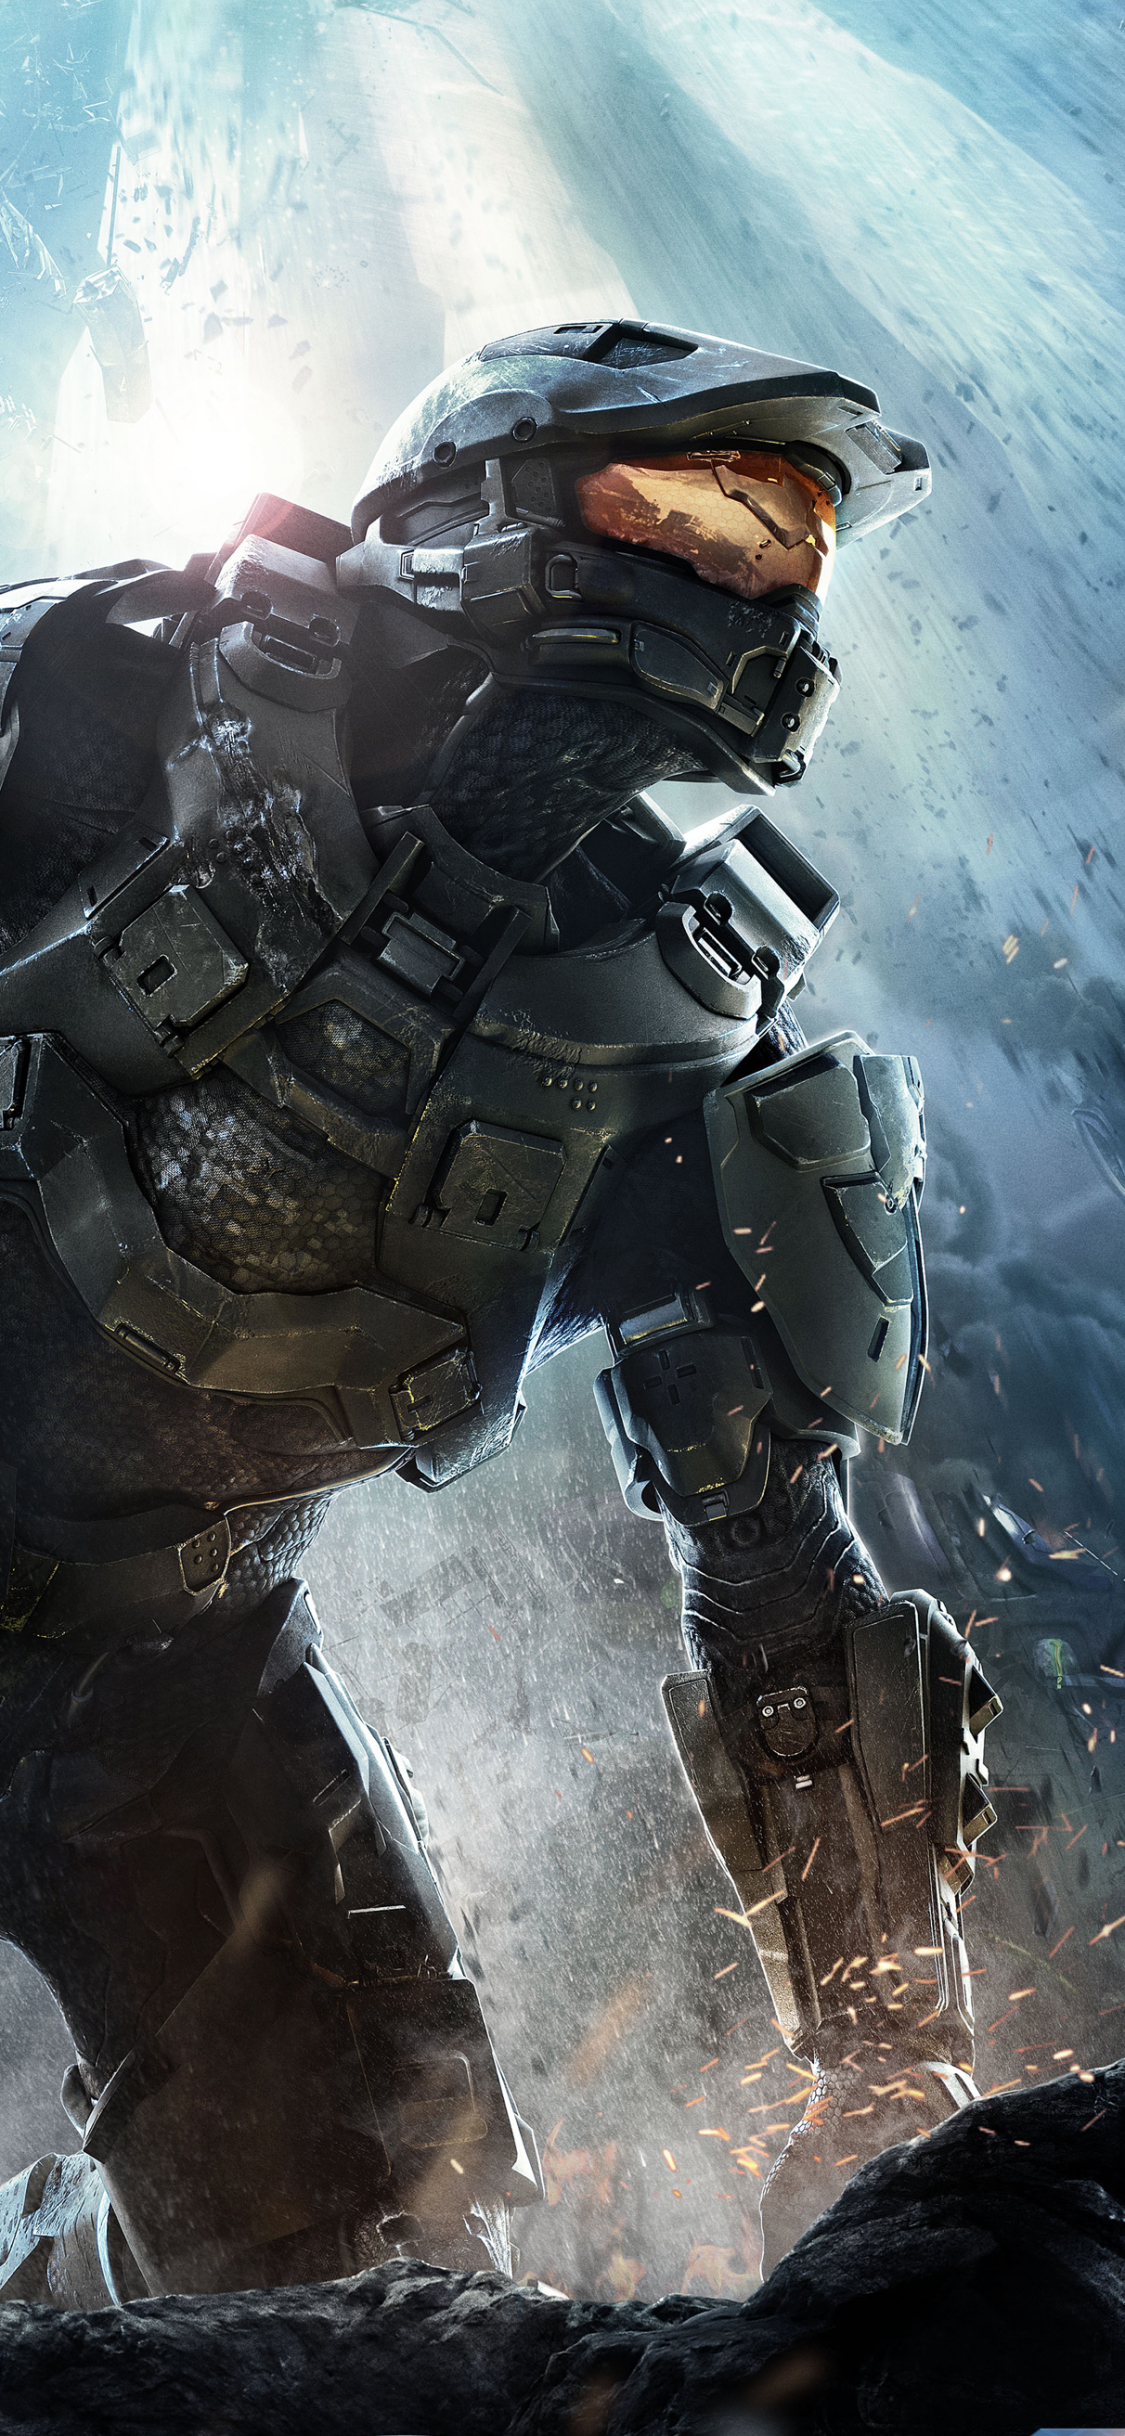 Video Game Halo 4 1125x2436 Wallpaper Id 799989 Mobile Abyss